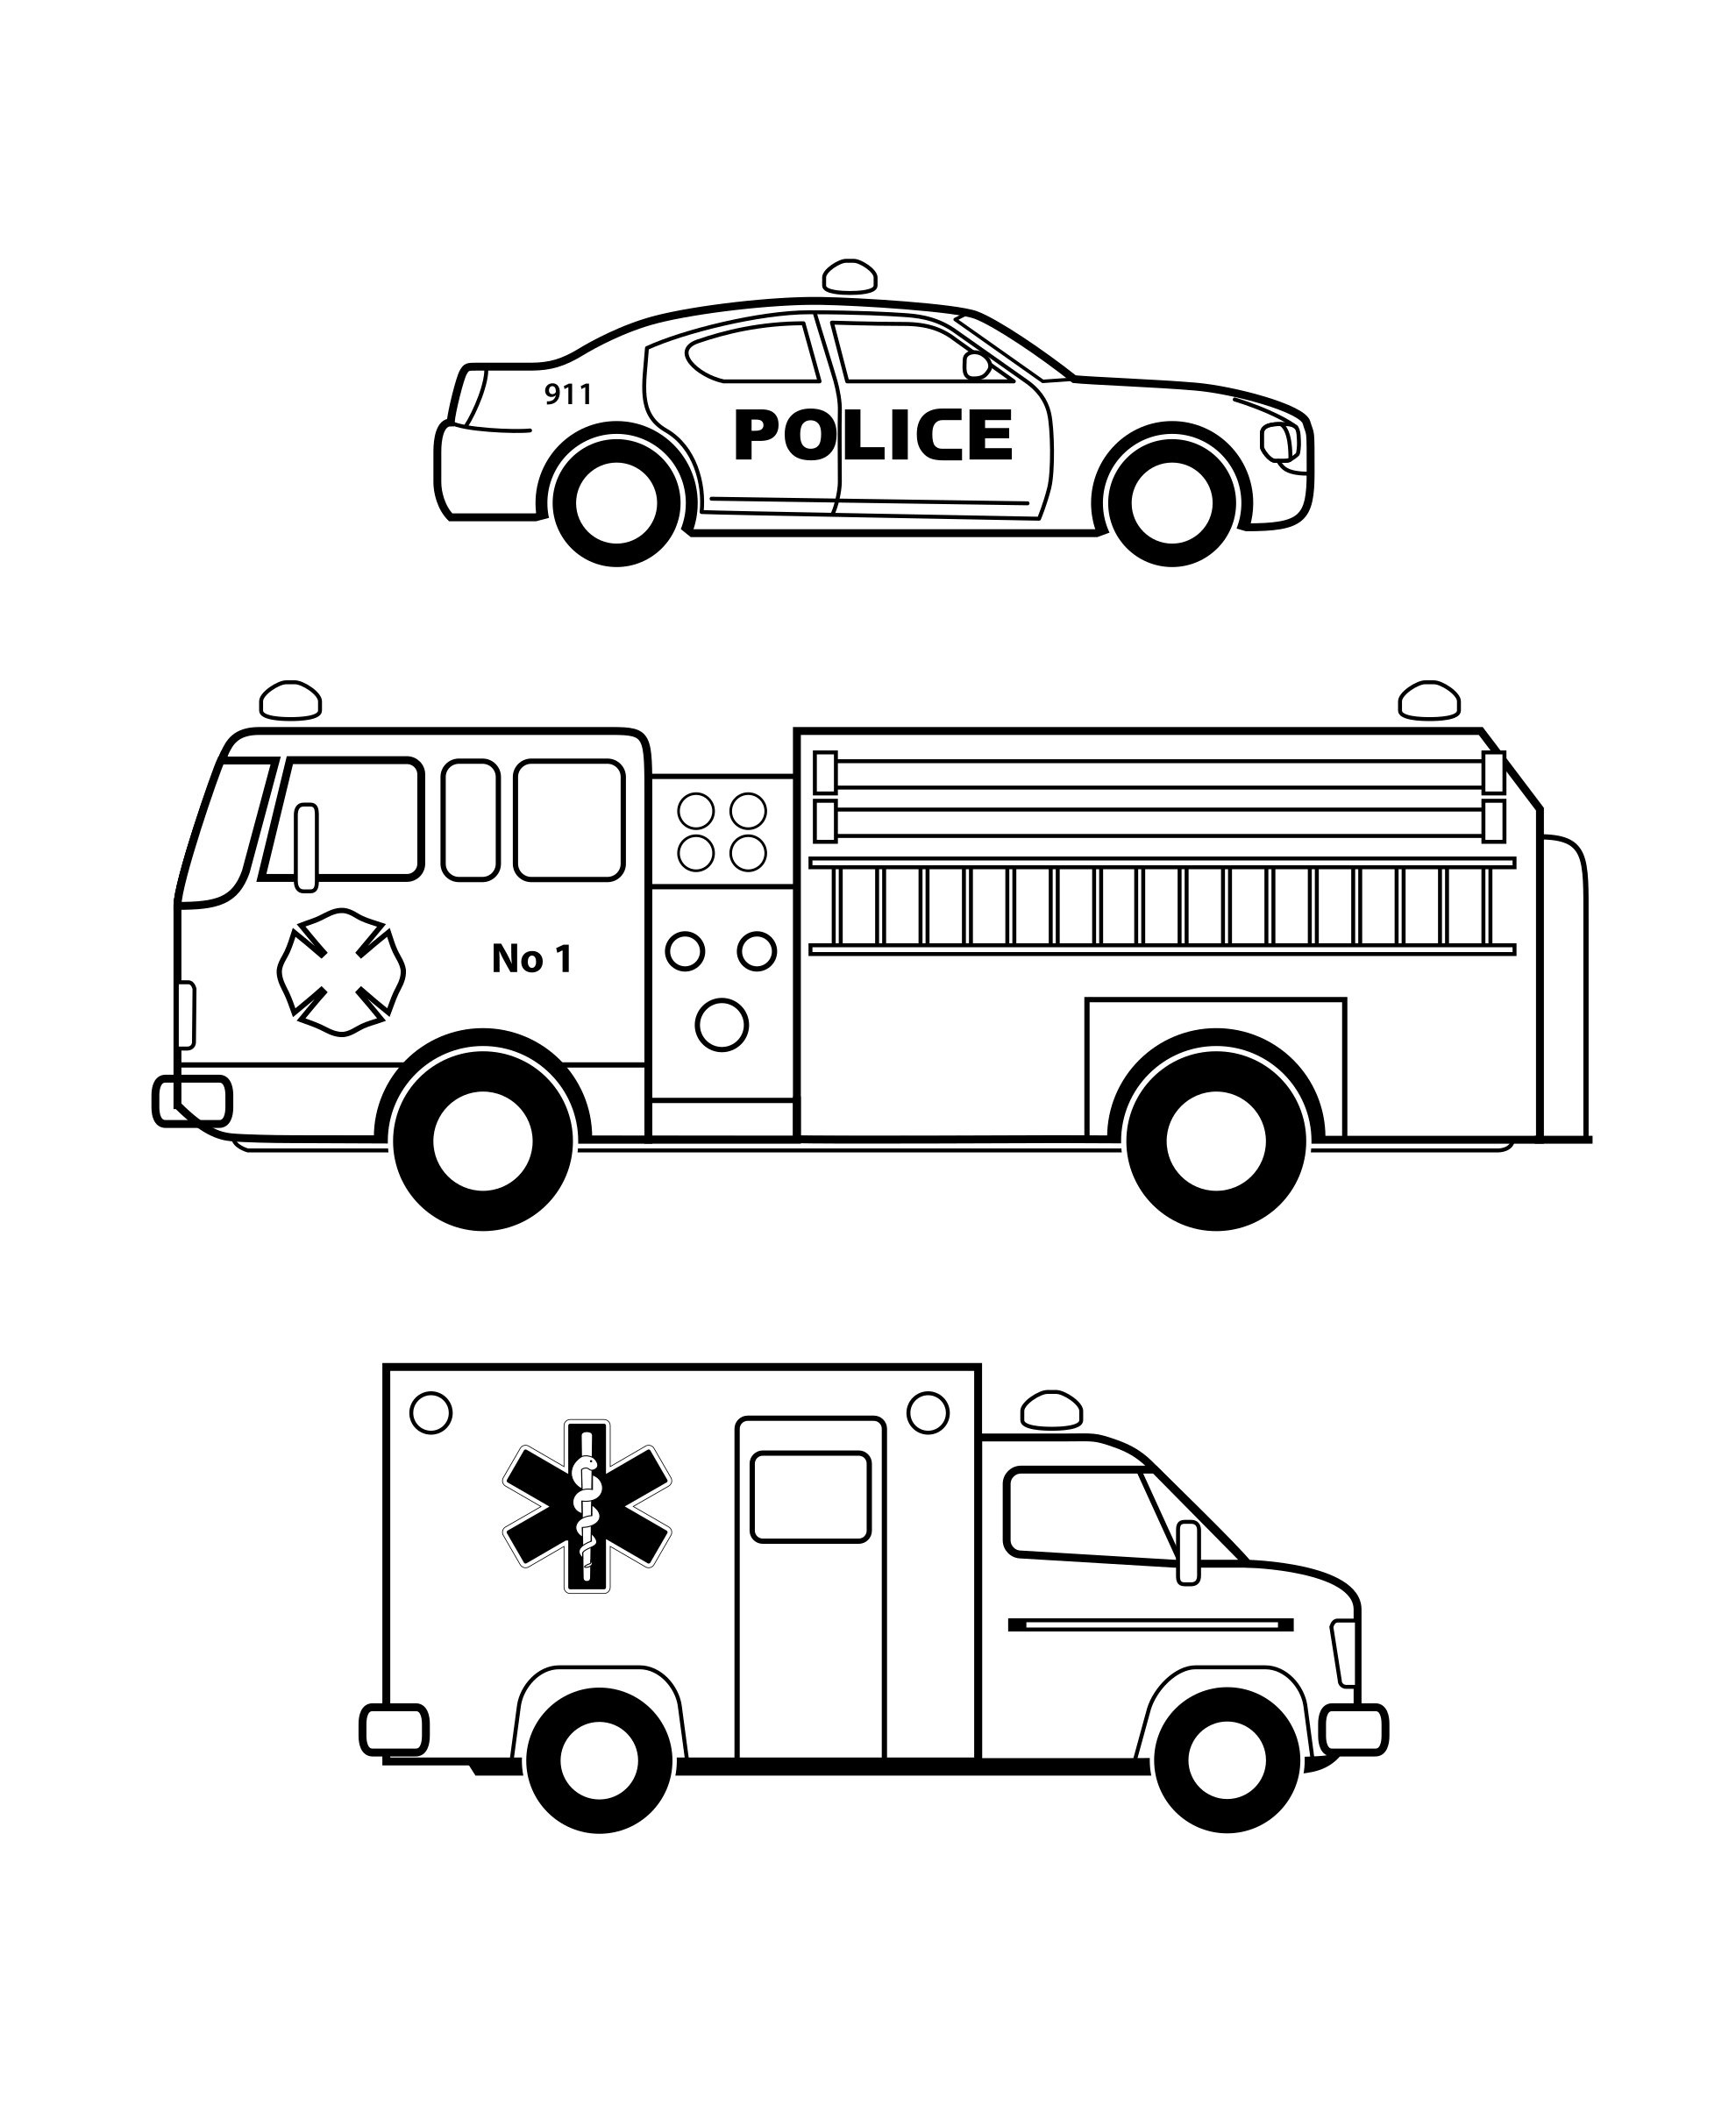 Police car clipart black and white picture free library Clipart - Emergency vehicles black and white picture free library